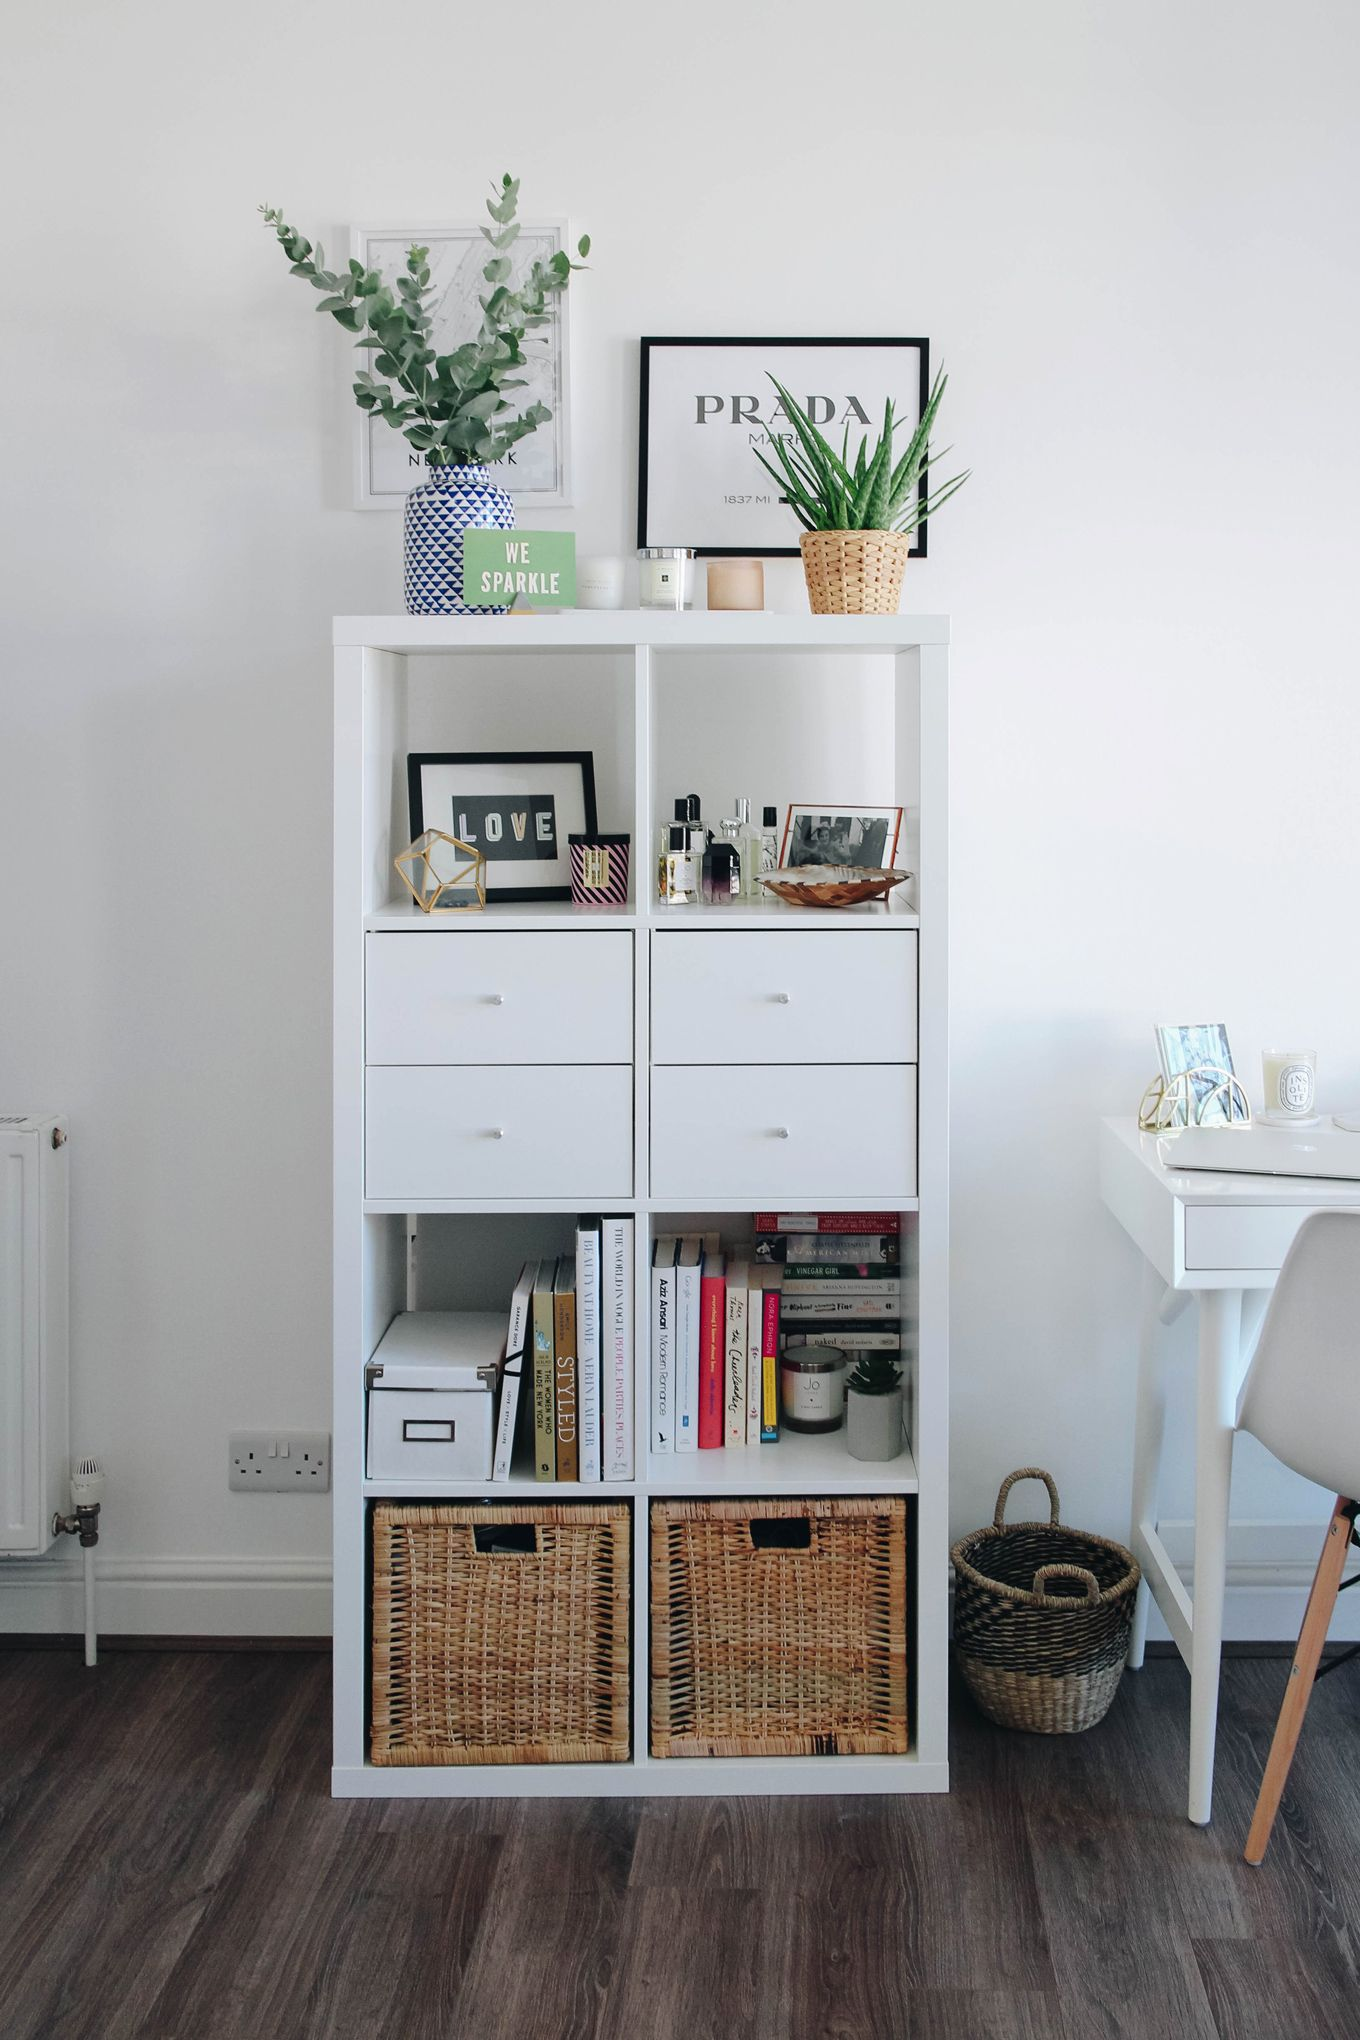 These Are the Best IKEA Designs I Purchased for My Apartment #firstapartment